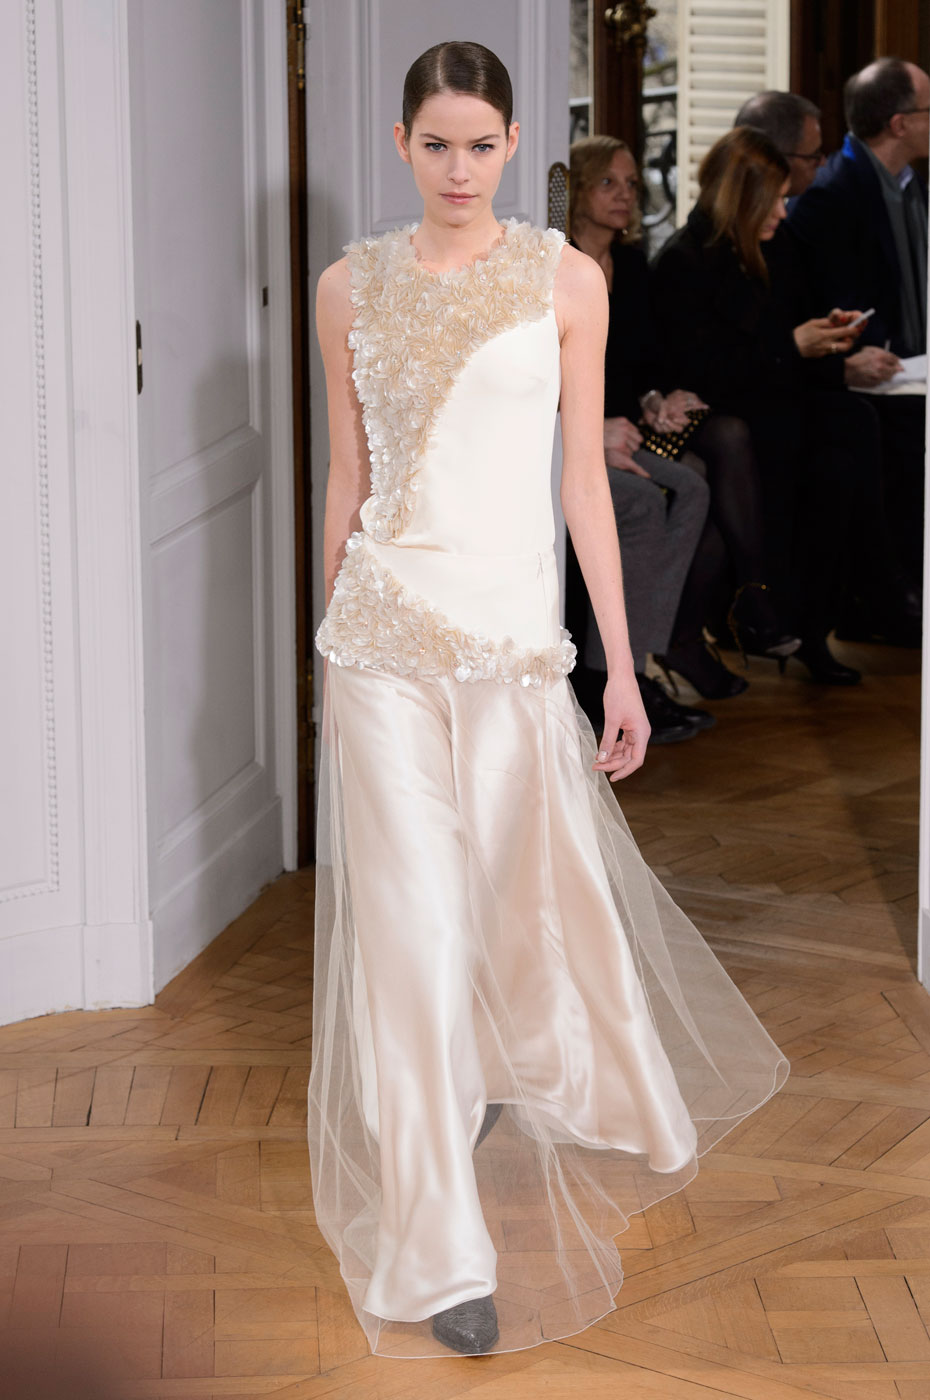 Bouchra-Jarrar-fashion-runway-show-haute-couture-paris-spring-summer-2015-the-impression-43